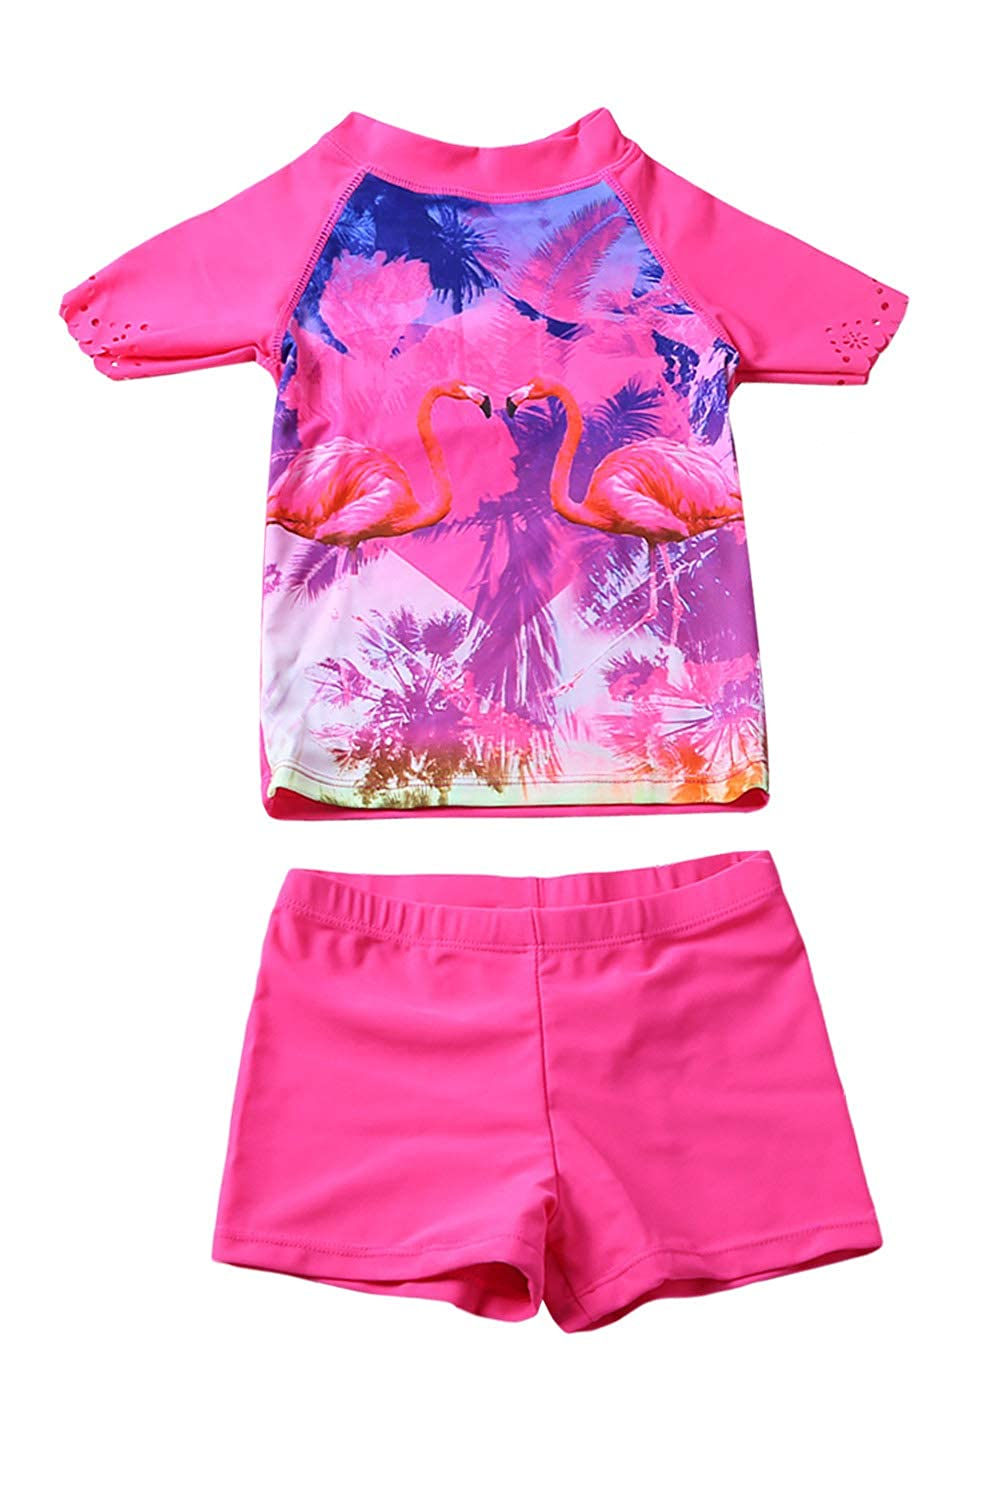 Aleumdr Little Girls Beach Day Comfortable Shirt and Short Set Two Piece Flamingo Swimsuit JZT410022-P